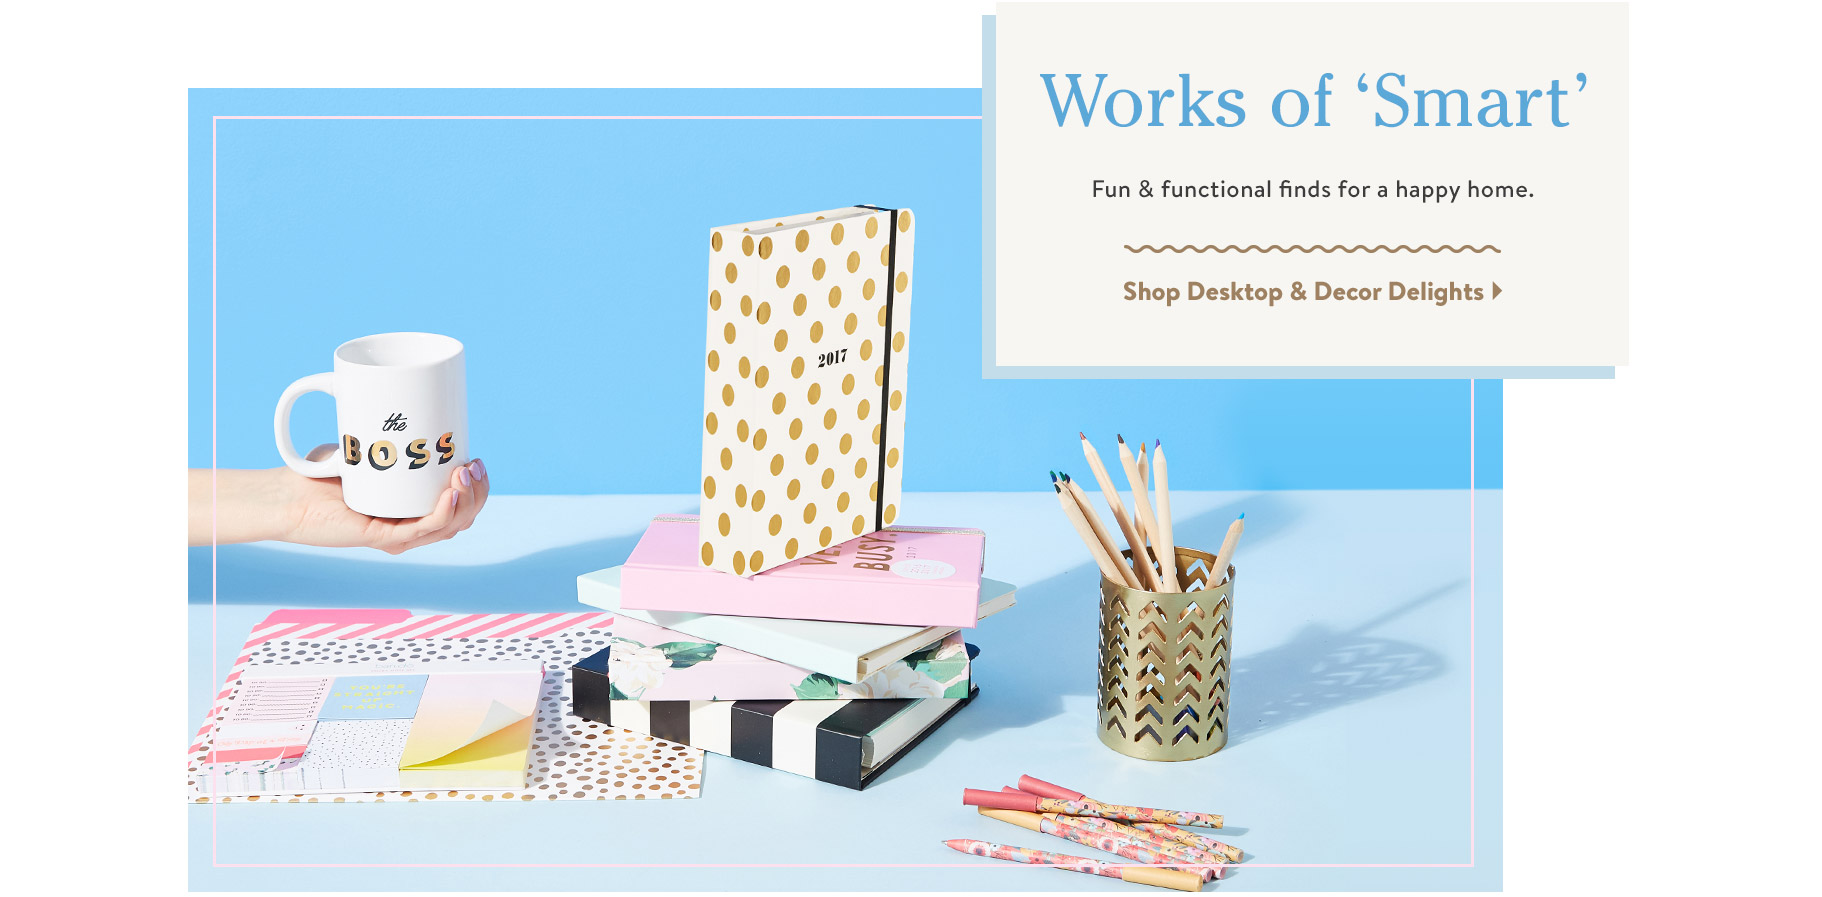 Works of 'Smart'. Fun & functional finds for a happy home. Shop Desktop & Decor Delights.